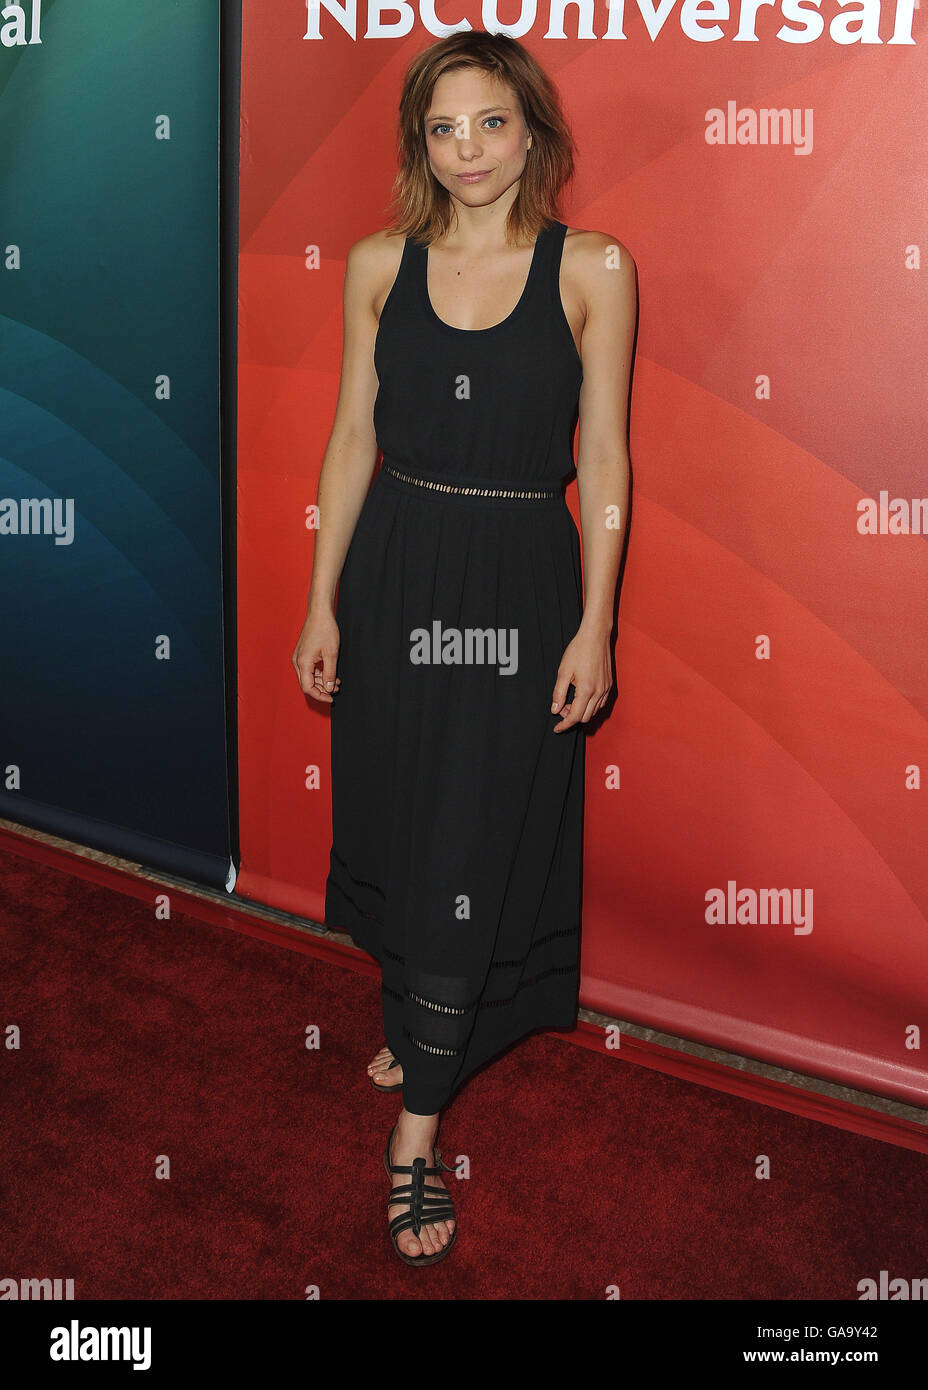 beverly hills ca august 3 lizzie brochere at the nbcuniversal